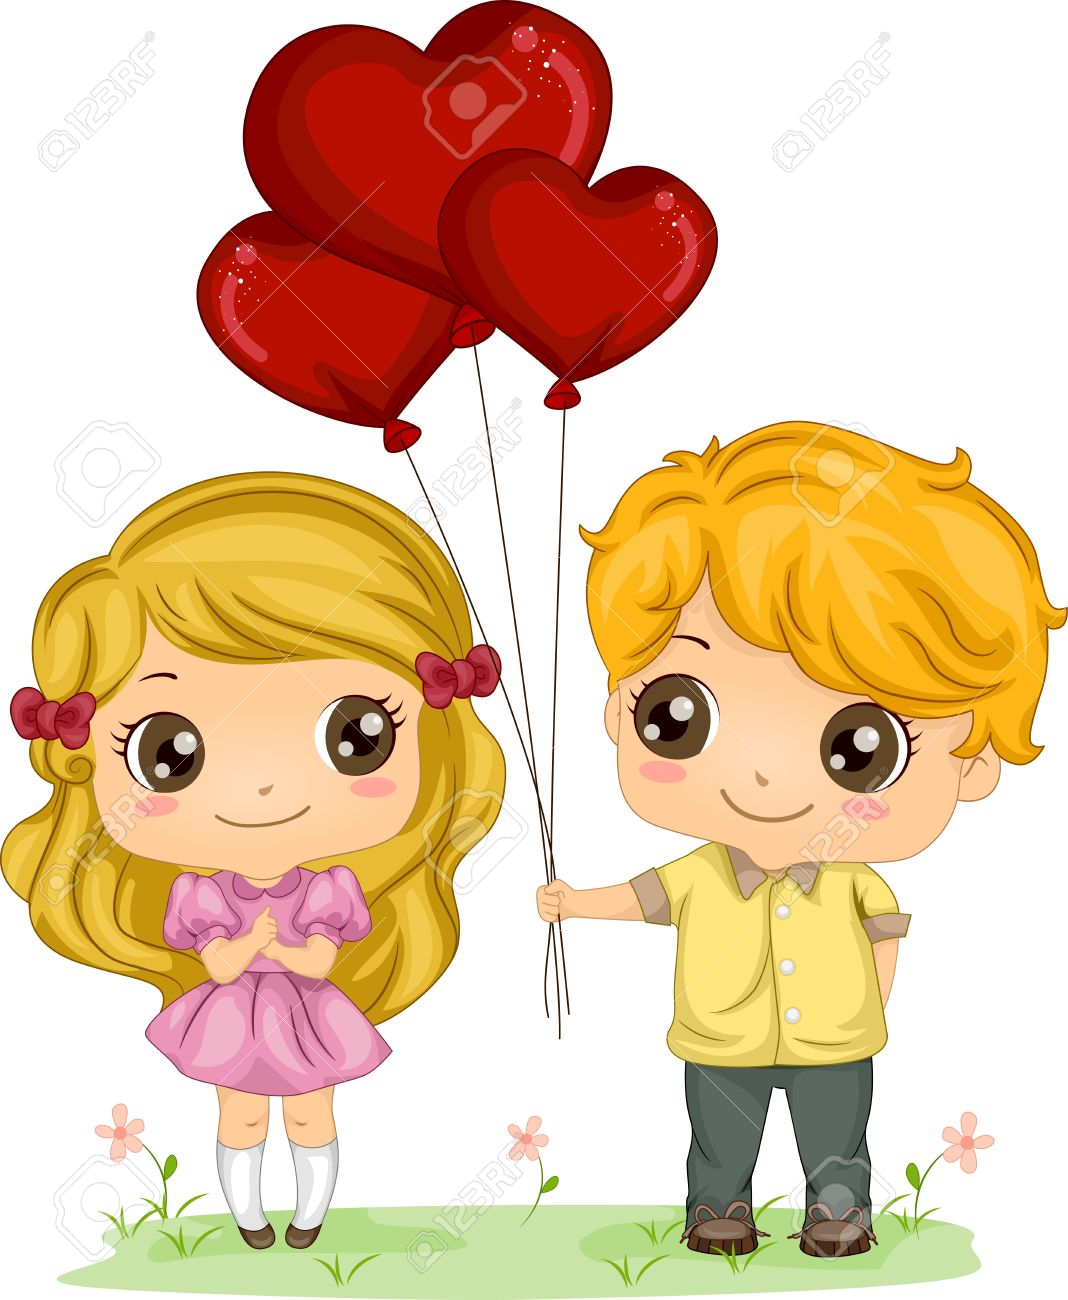 Illustration Of A Boy Giving A Girl A Bunch Of Balloons Stock.